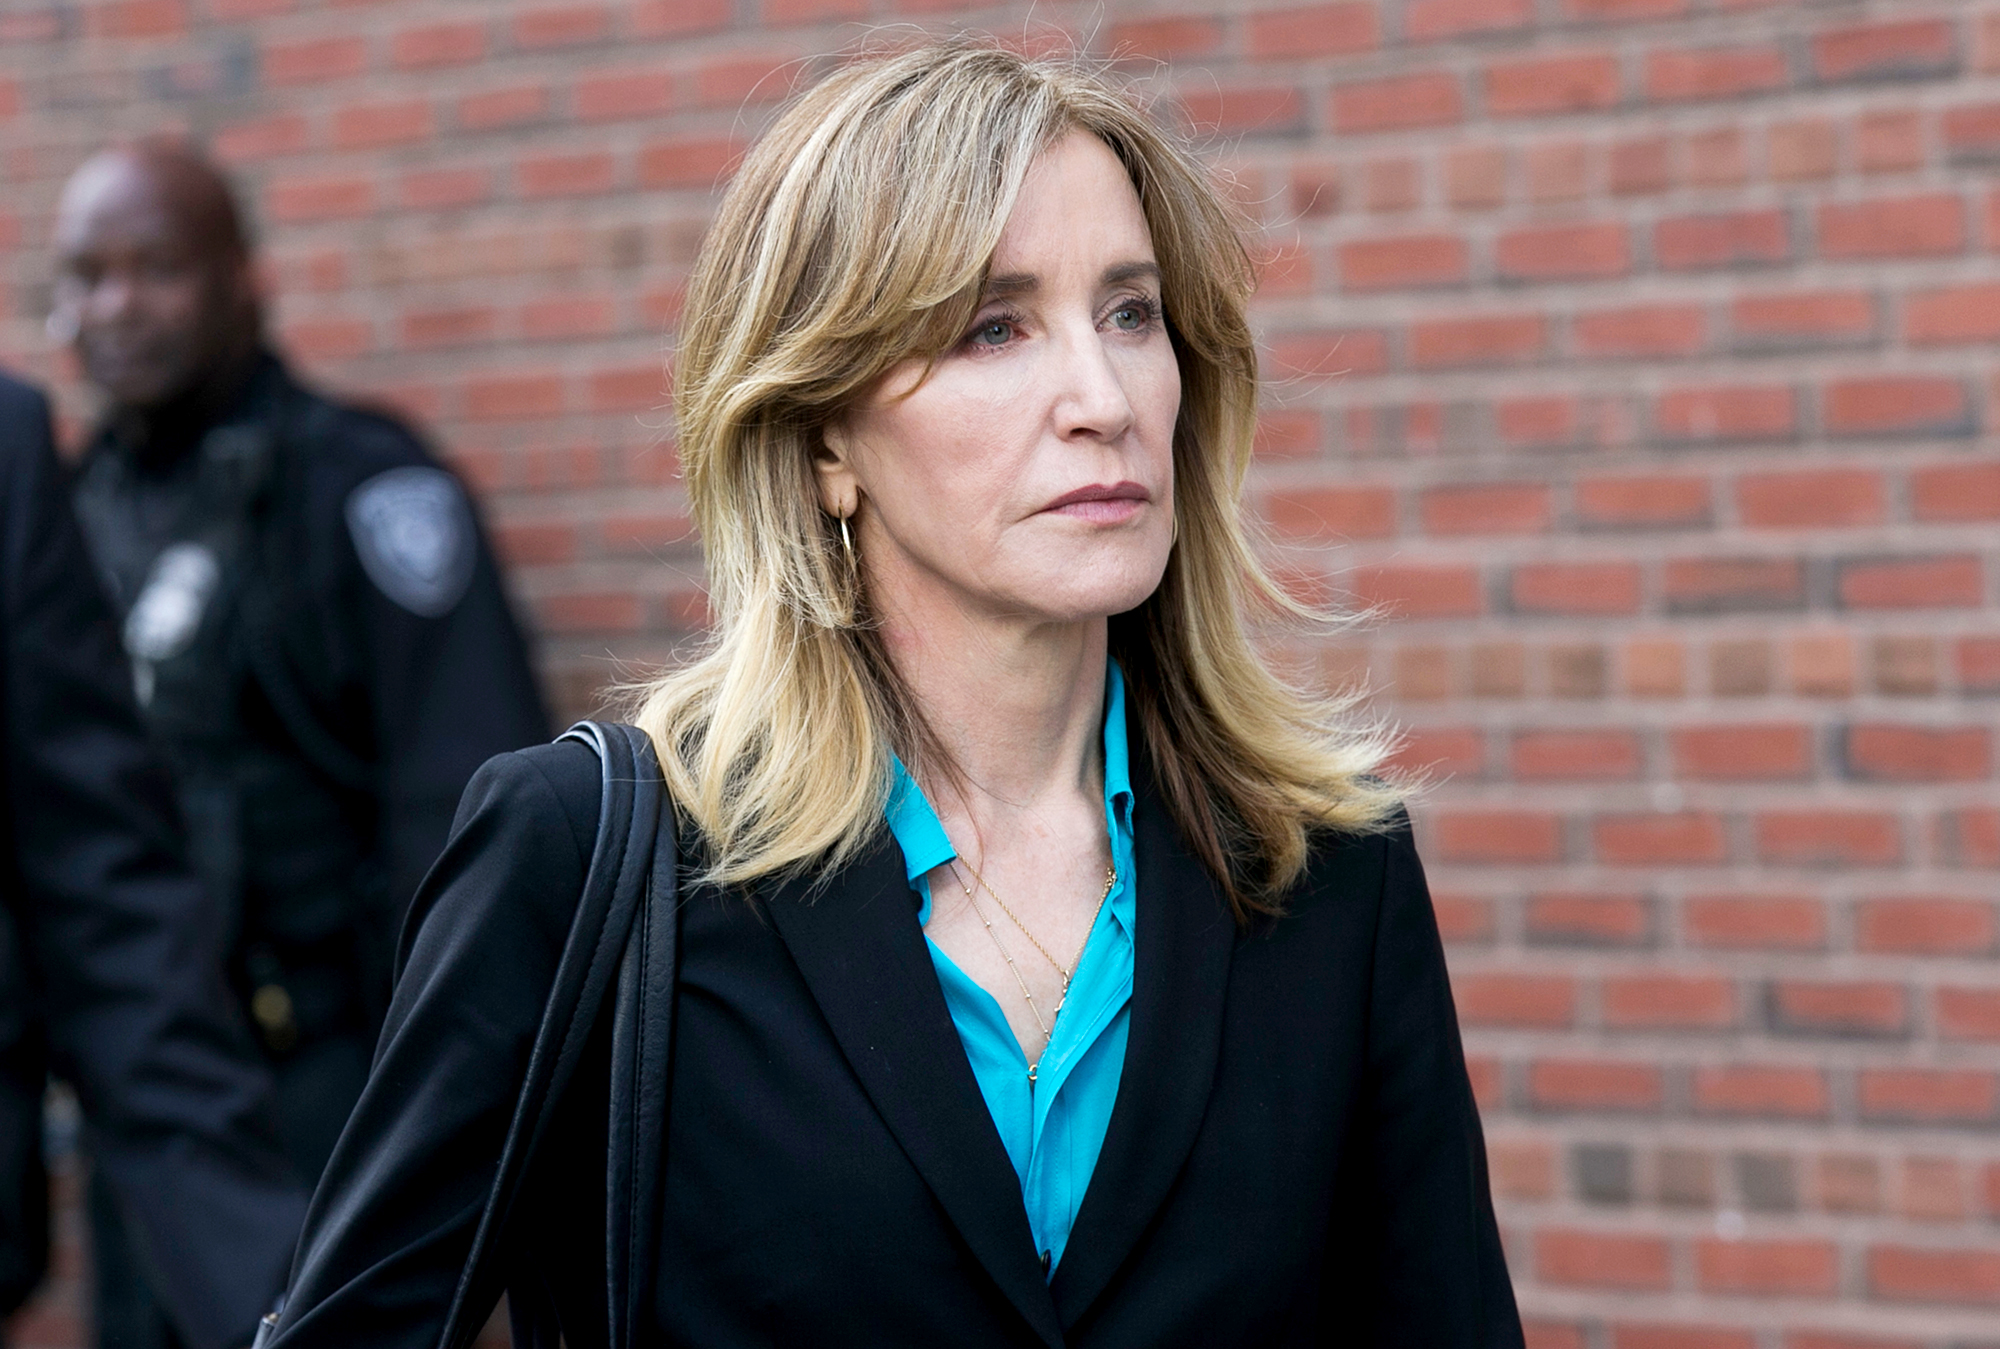 Why-Felicity-Huffman-Reported-to-Prison-10-Days-Early-for-College-Admissions-Sentence